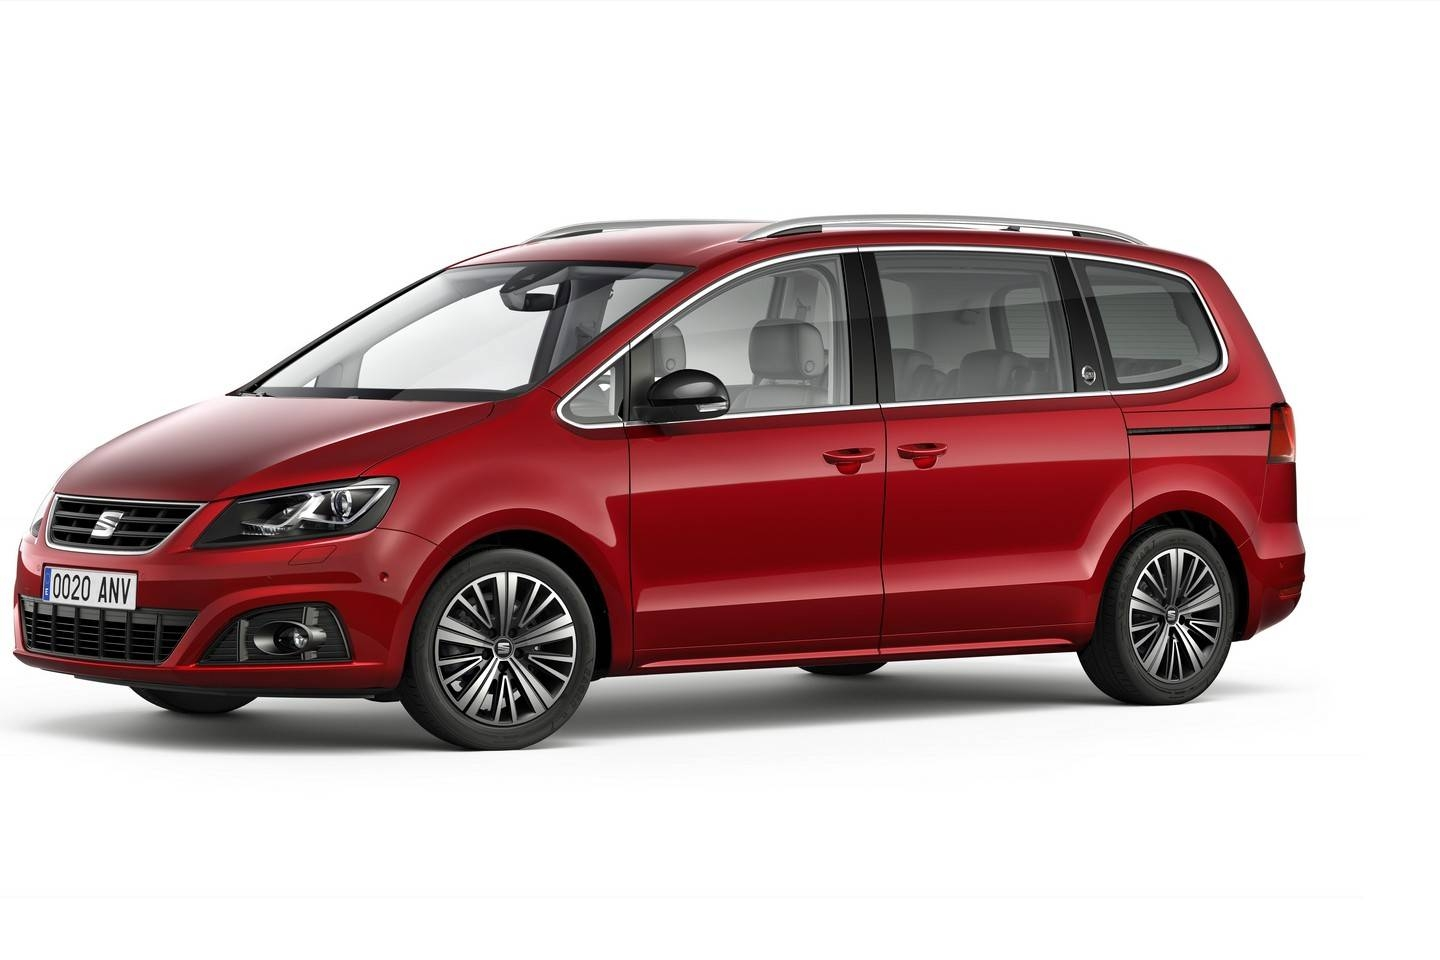 image of 7-Seater MPV (Alhambra or similar)